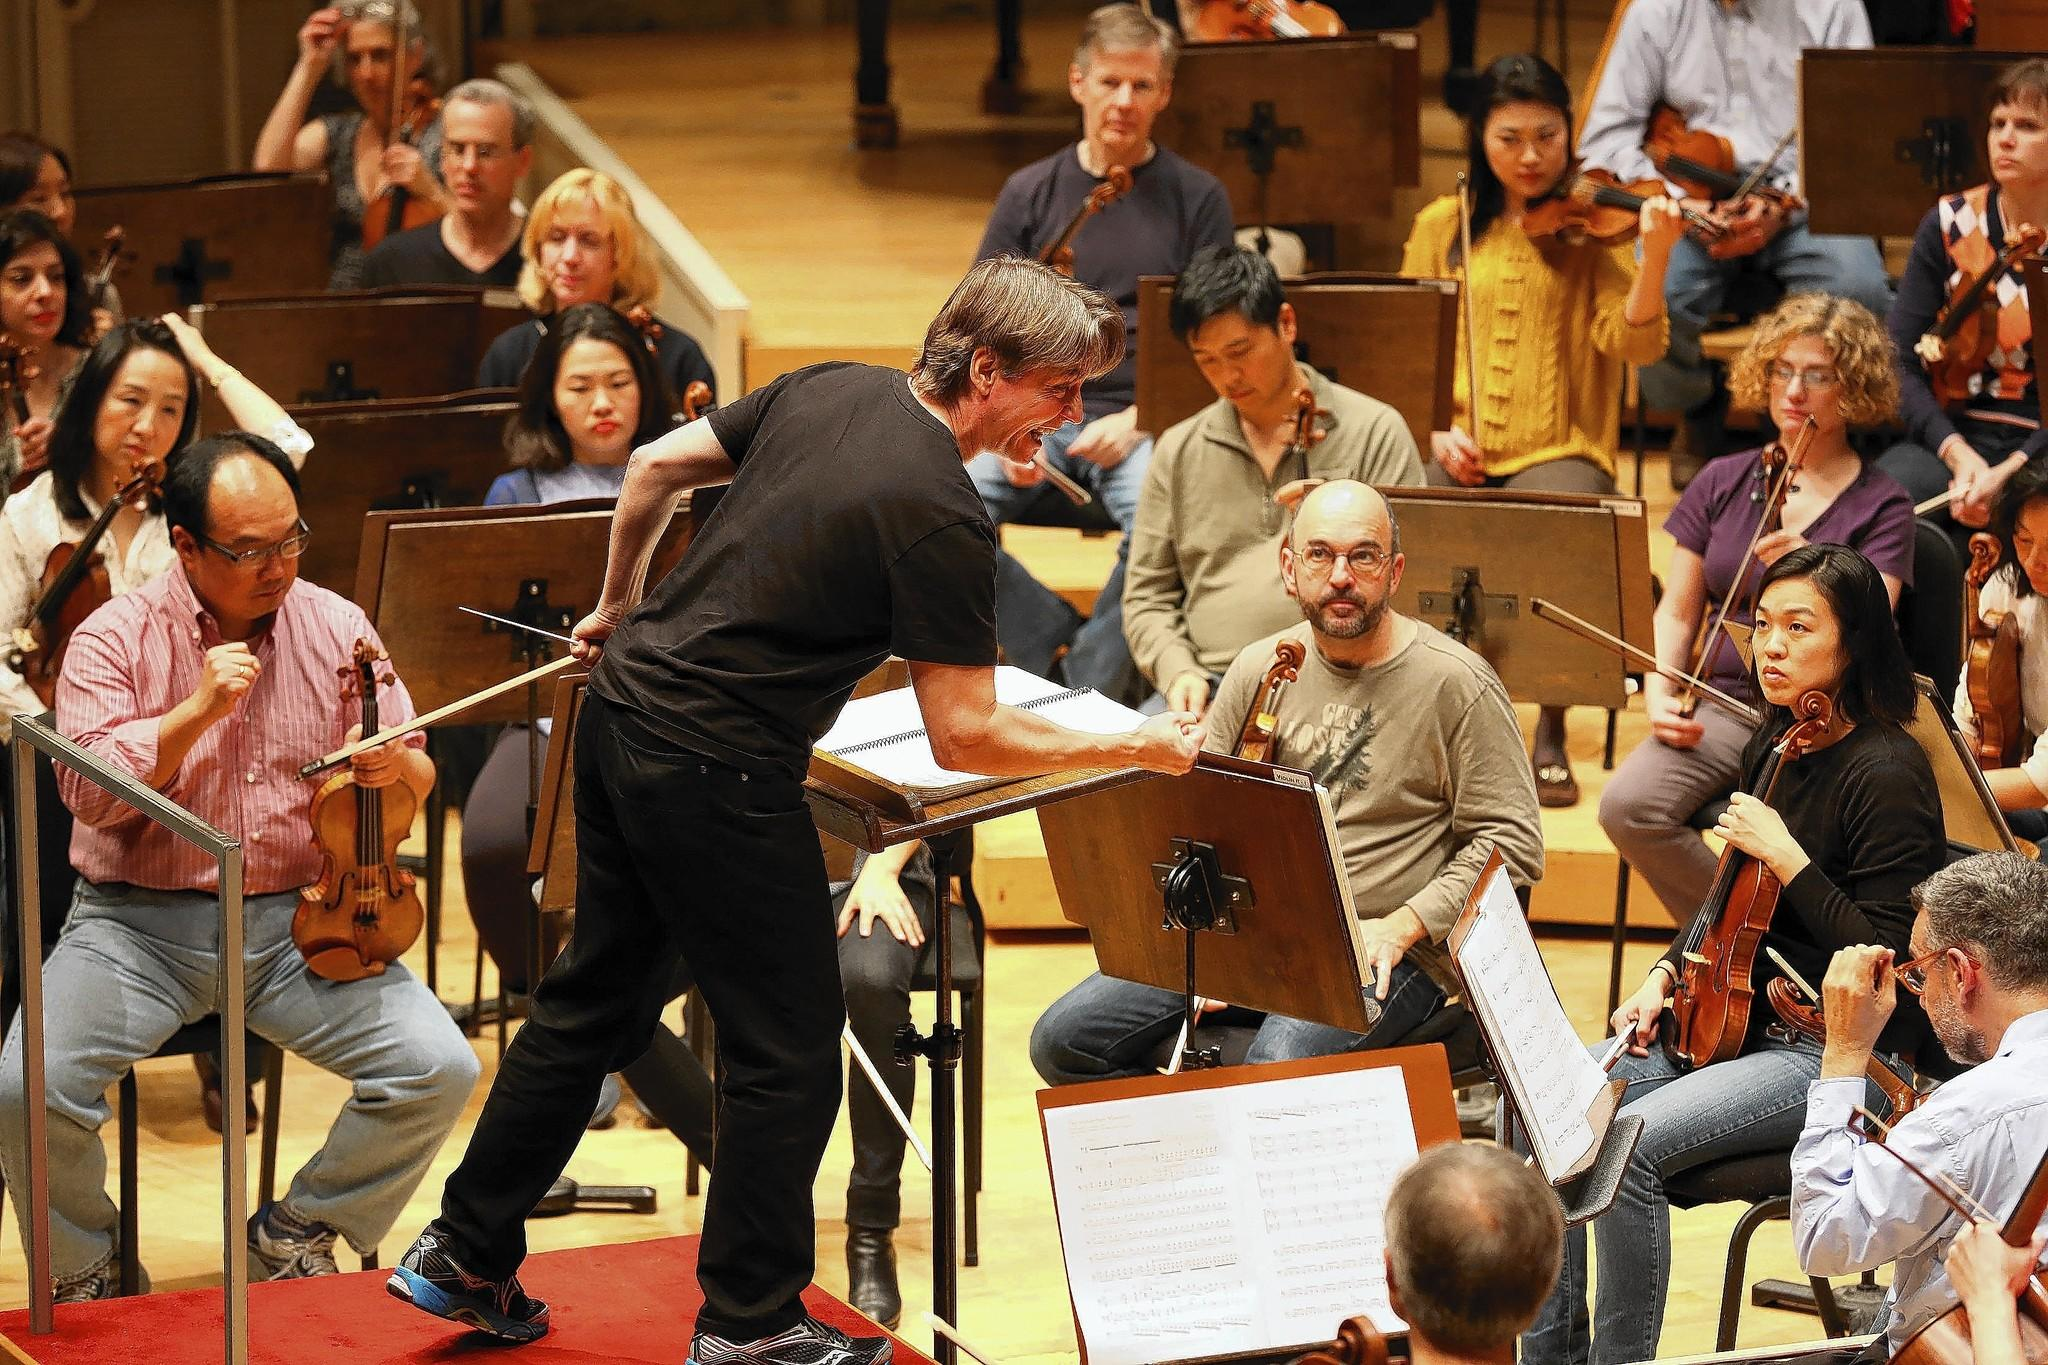 Celebrated conductor and composer Esa-Pekka Salonen, rehearses with the Chicago Symphony Orchestra.